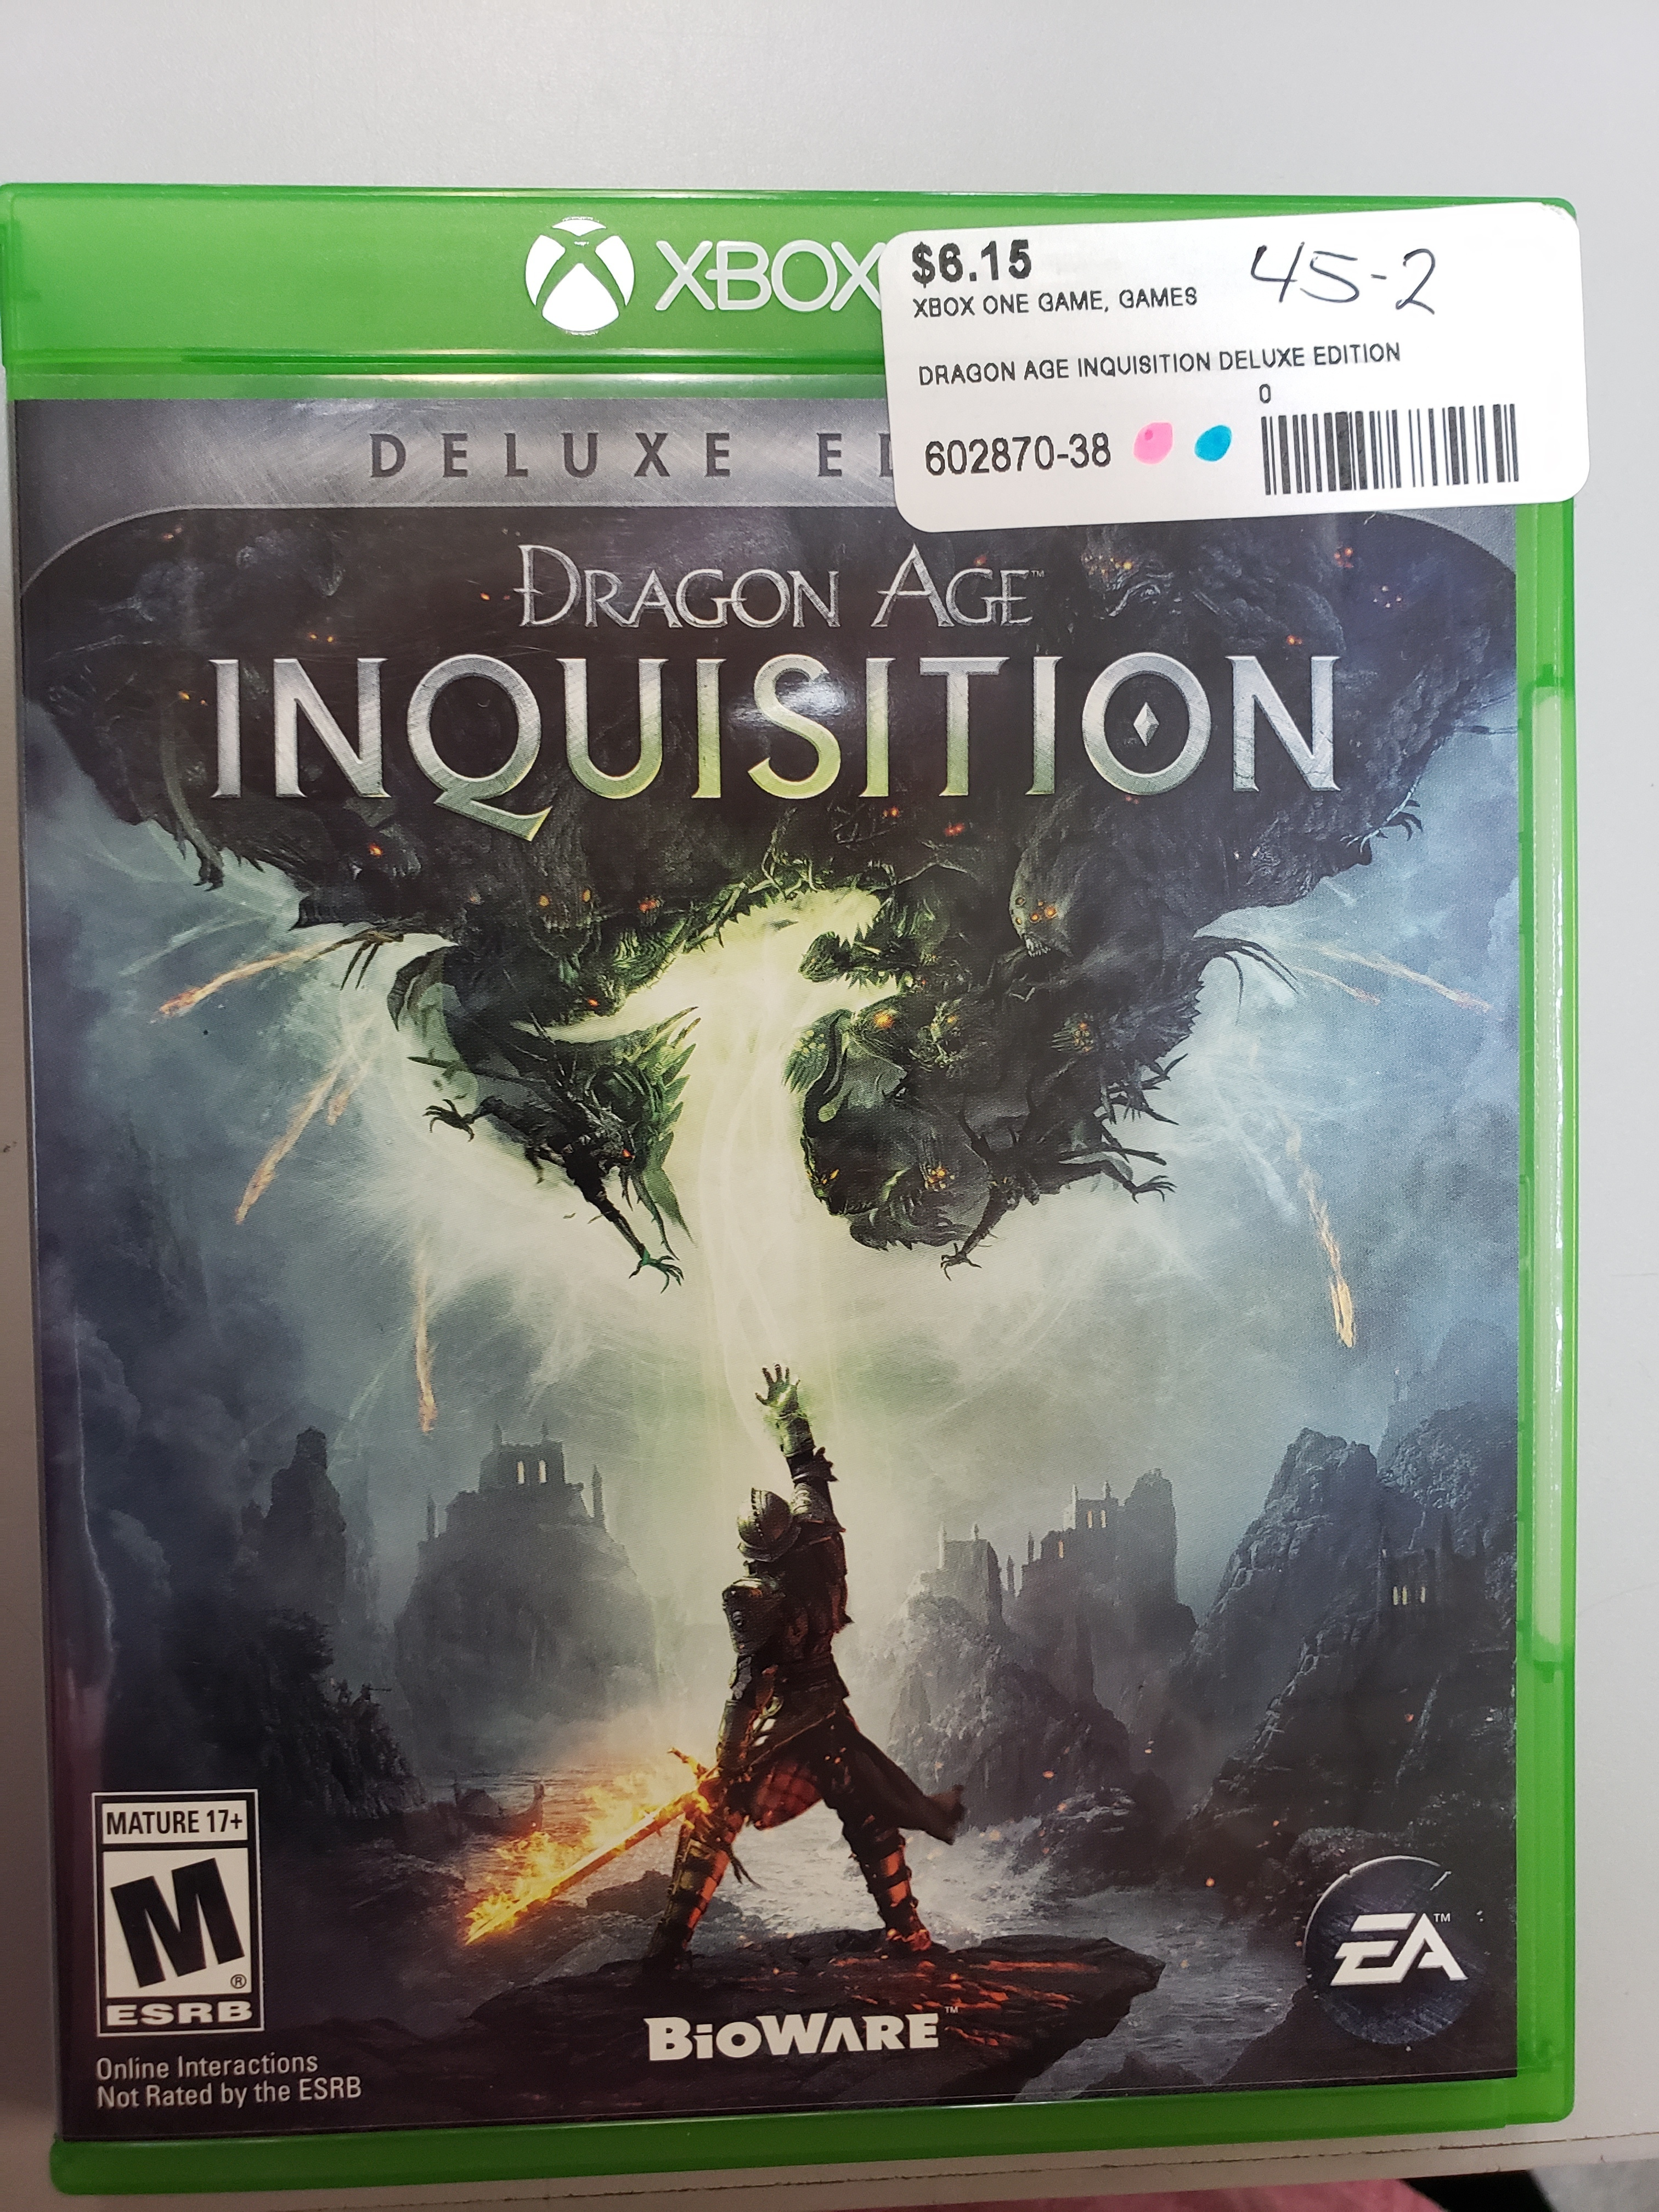 DRAGON AGE INQUISITION DELUXE EDITION - XBOX ONE GAME